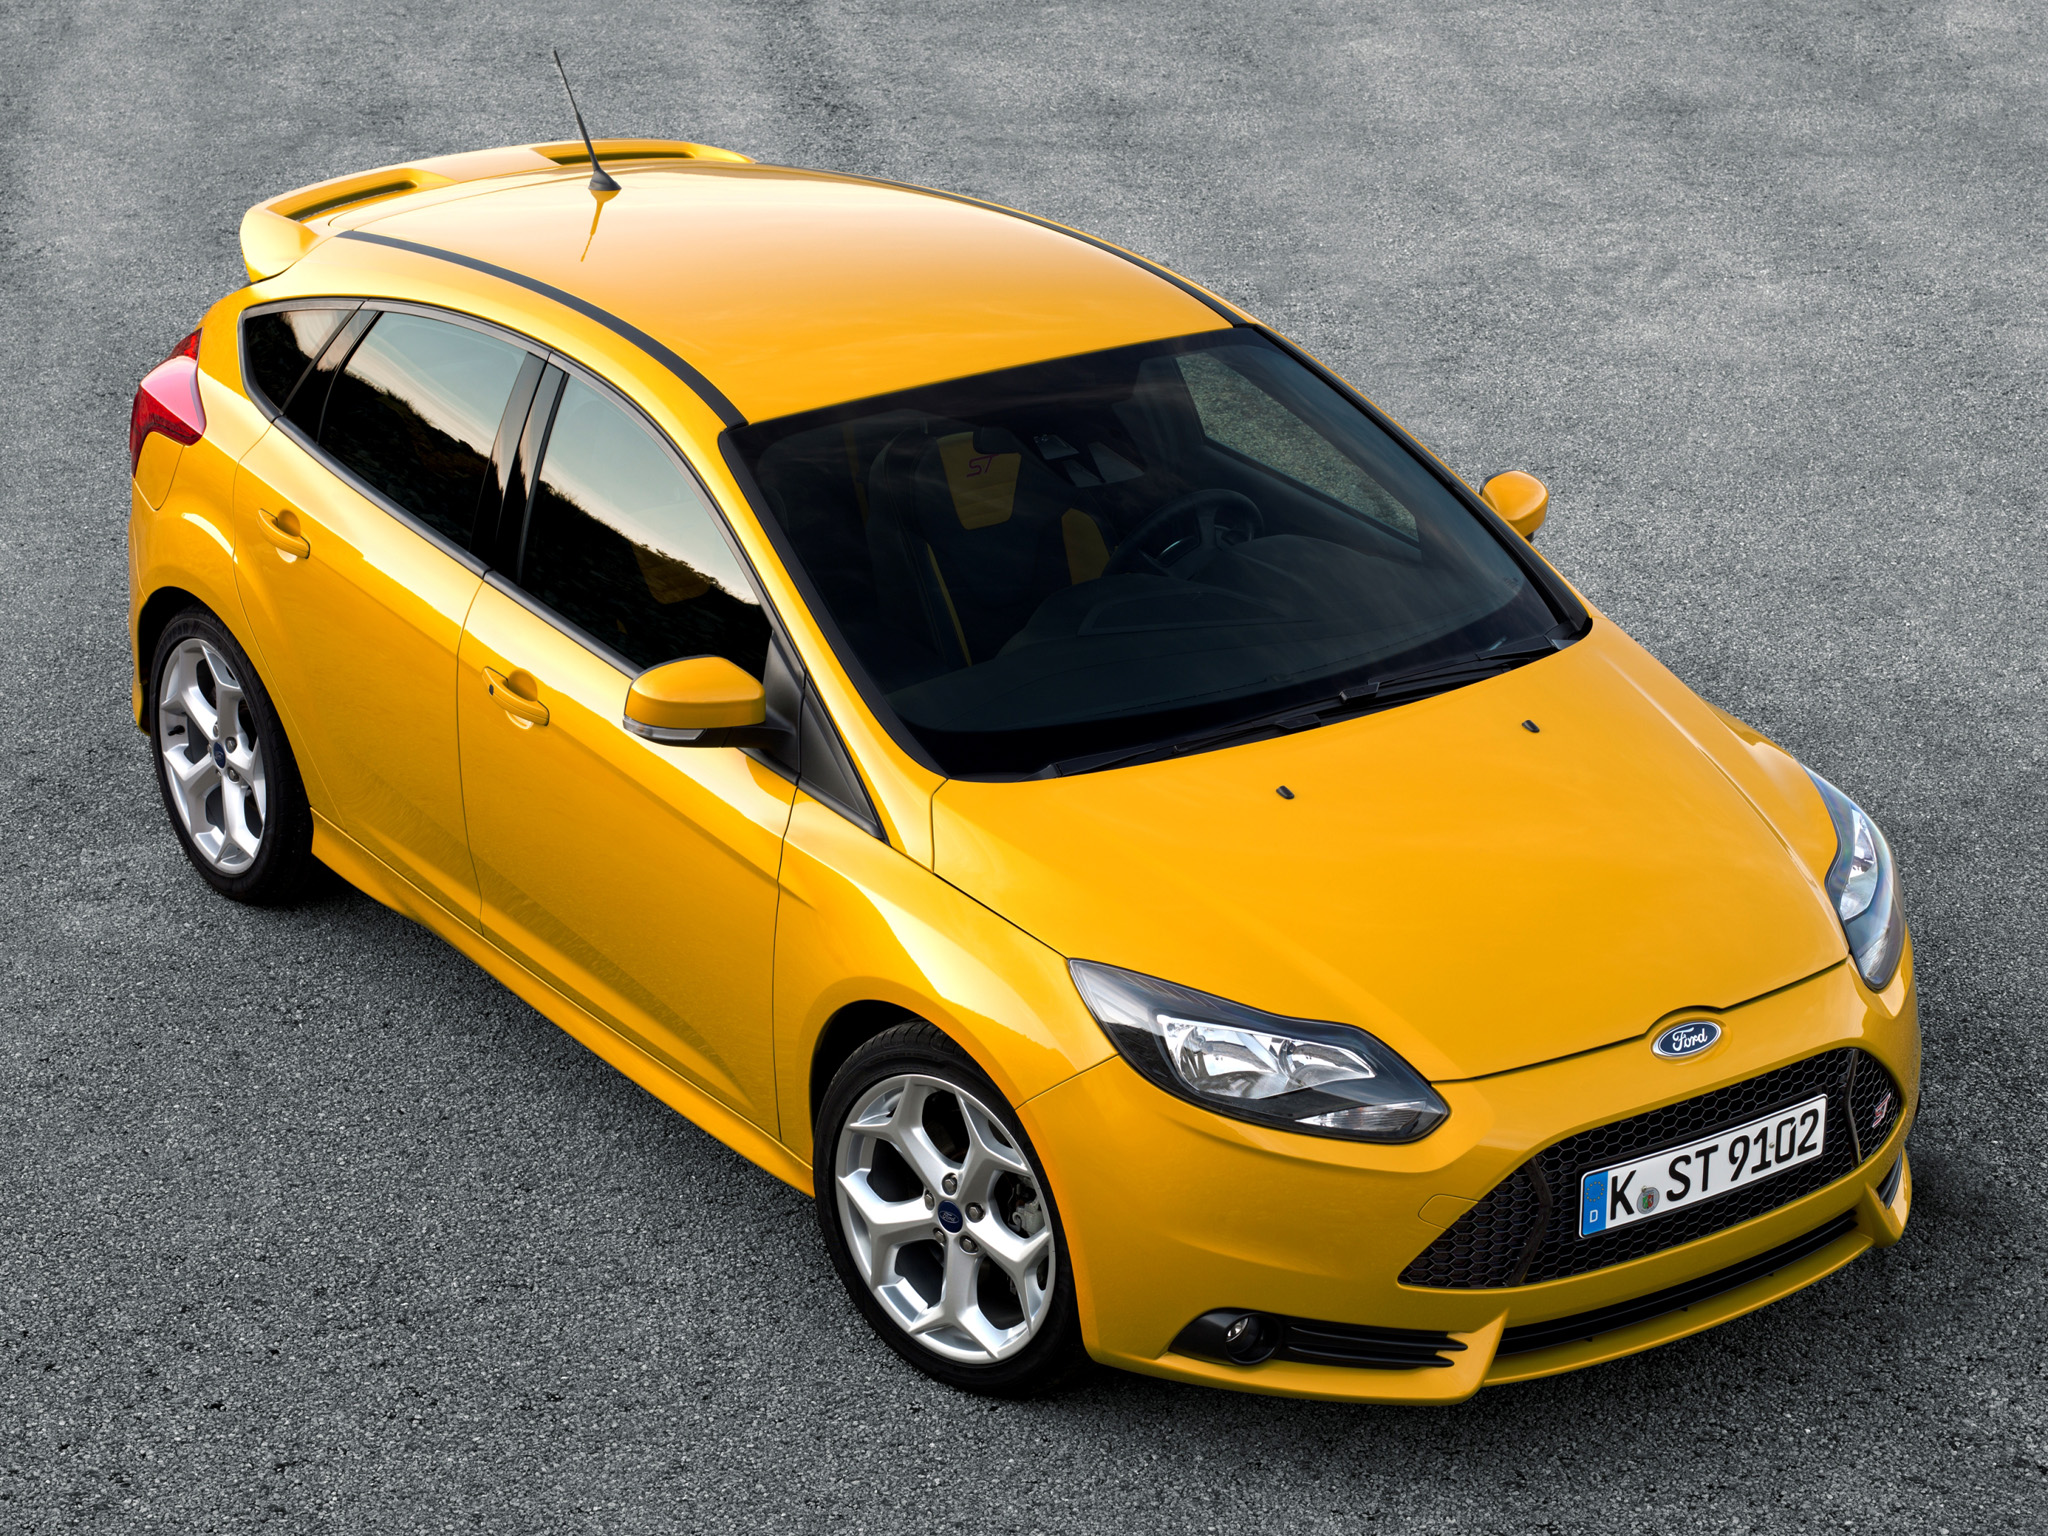 Focus Rs Hp >> Ford Focus Rs May Get 350 Hp Set For 2014 Unveil